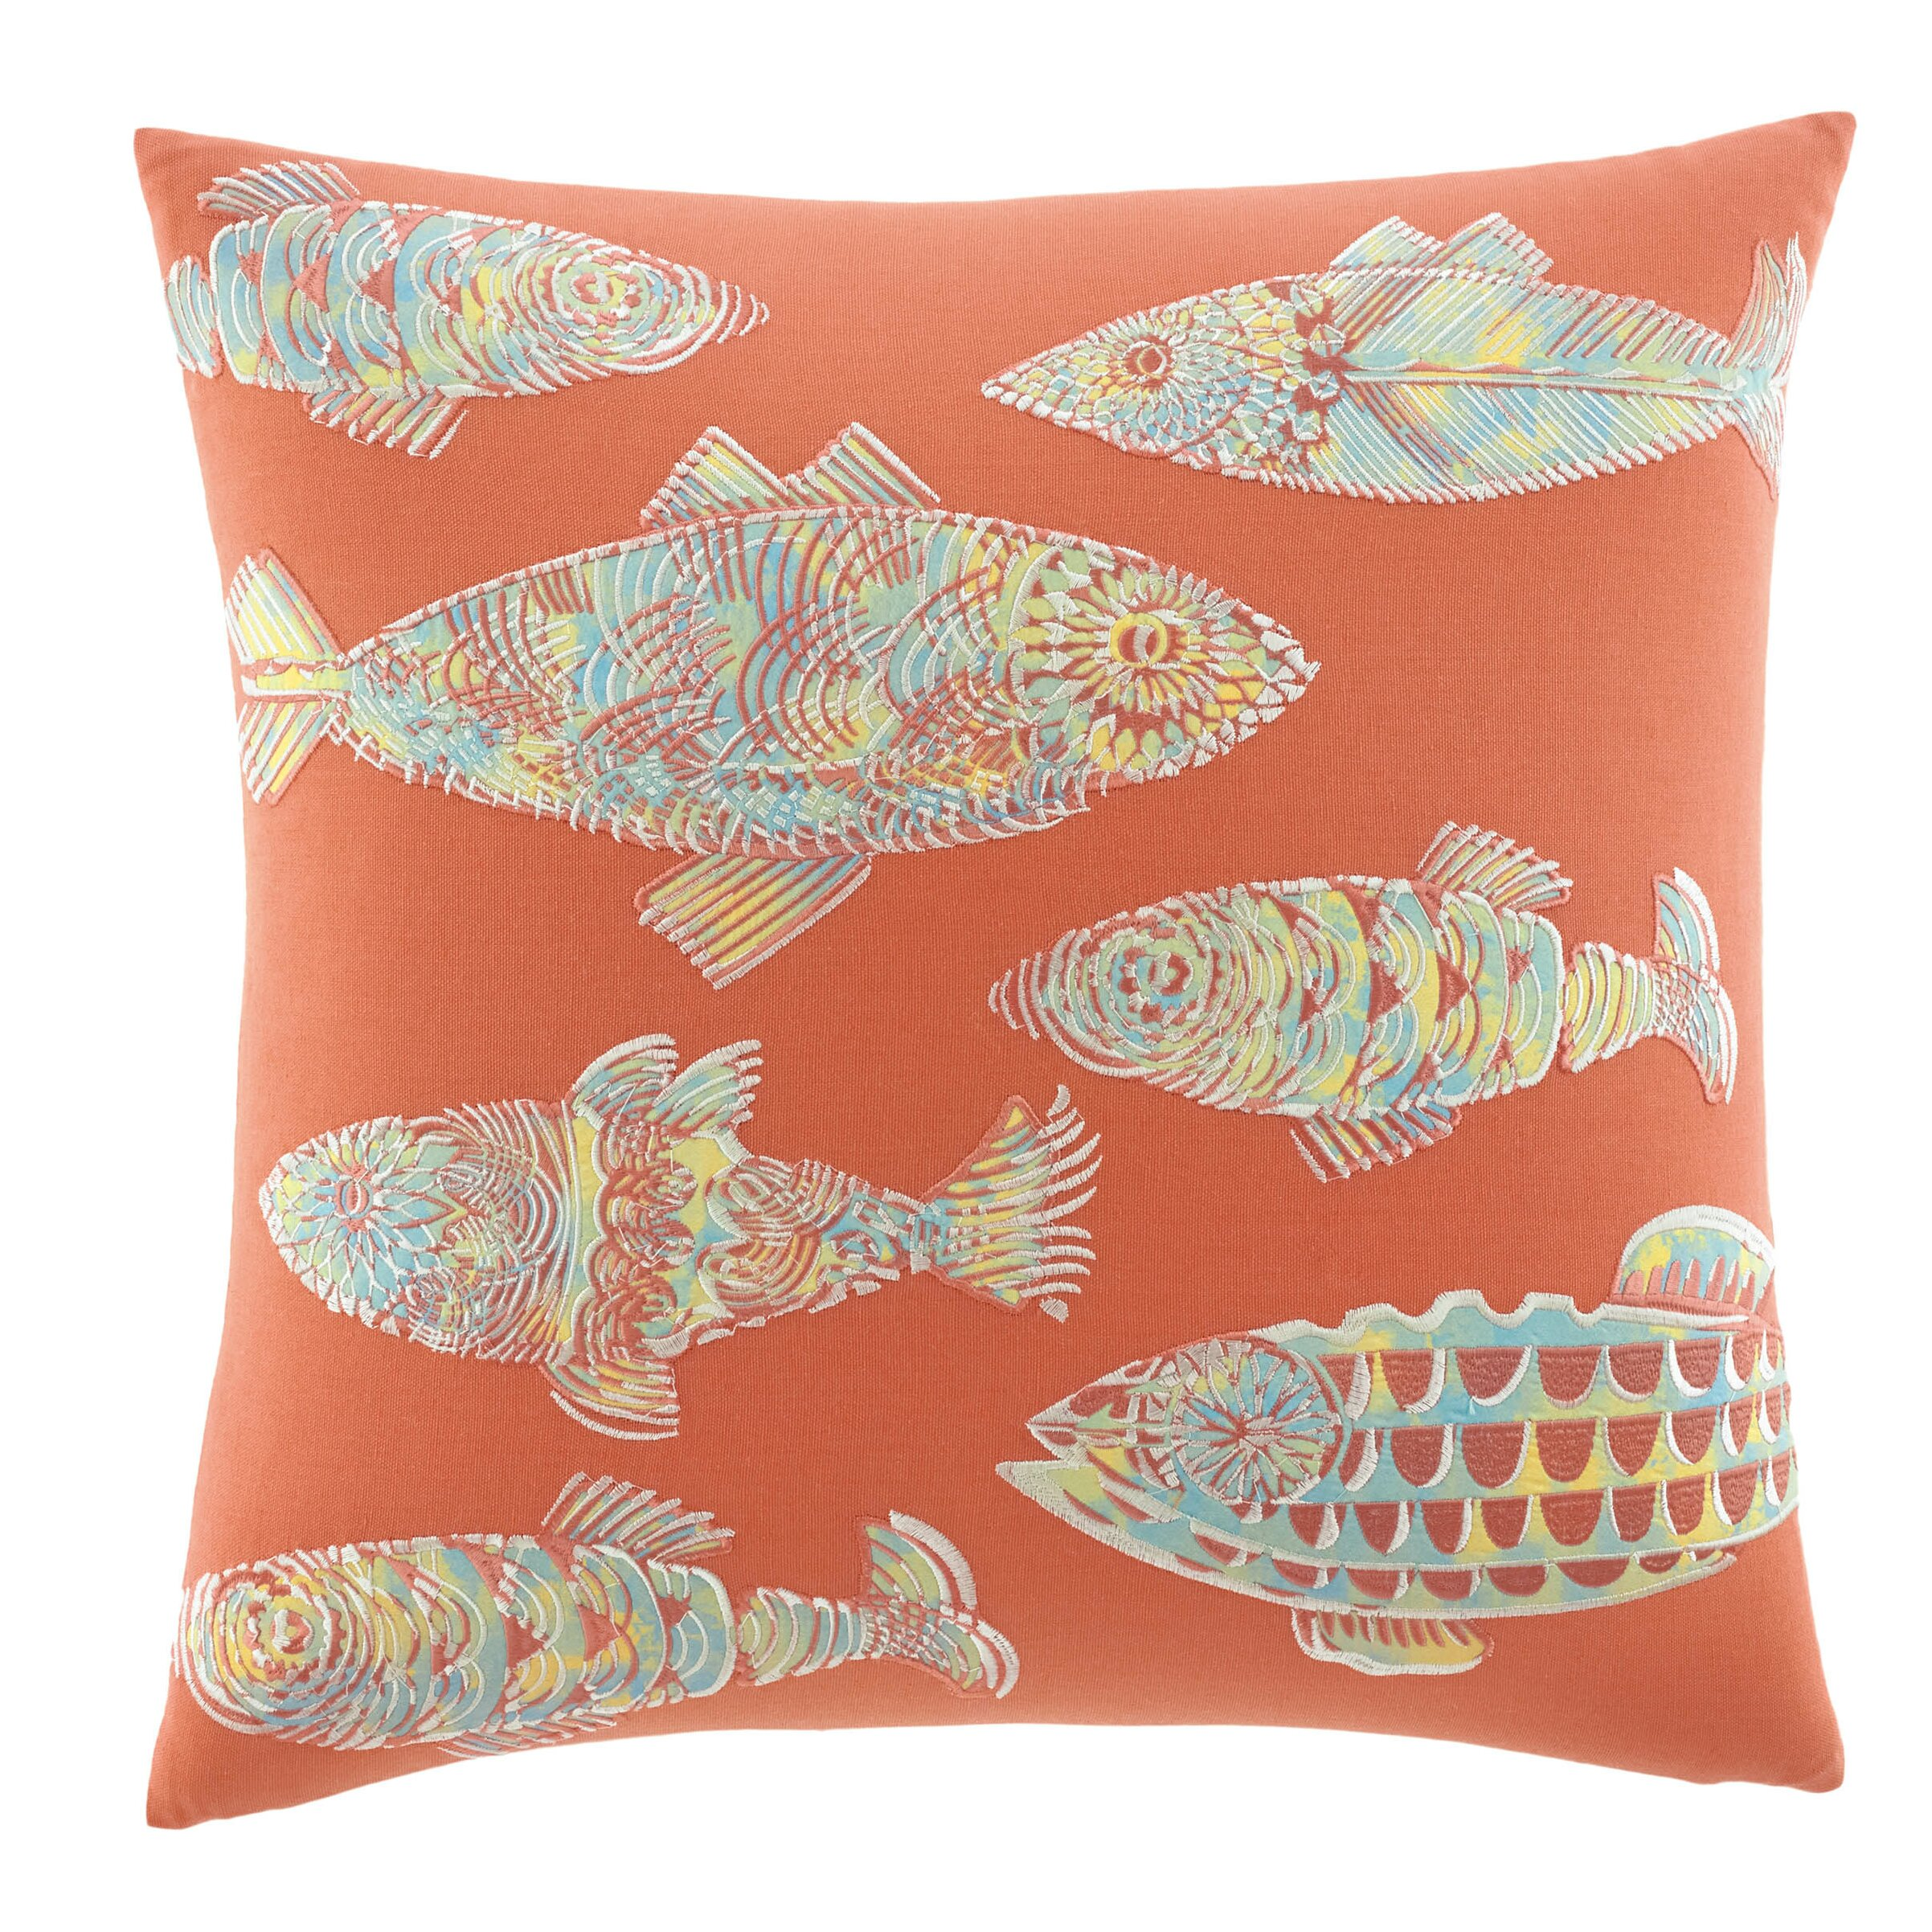 Colorful Throw Pillows Bedroom : Tommy Bahama Bedding Batic Fish Cotton Decorative Throw Pillow & Reviews Wayfair